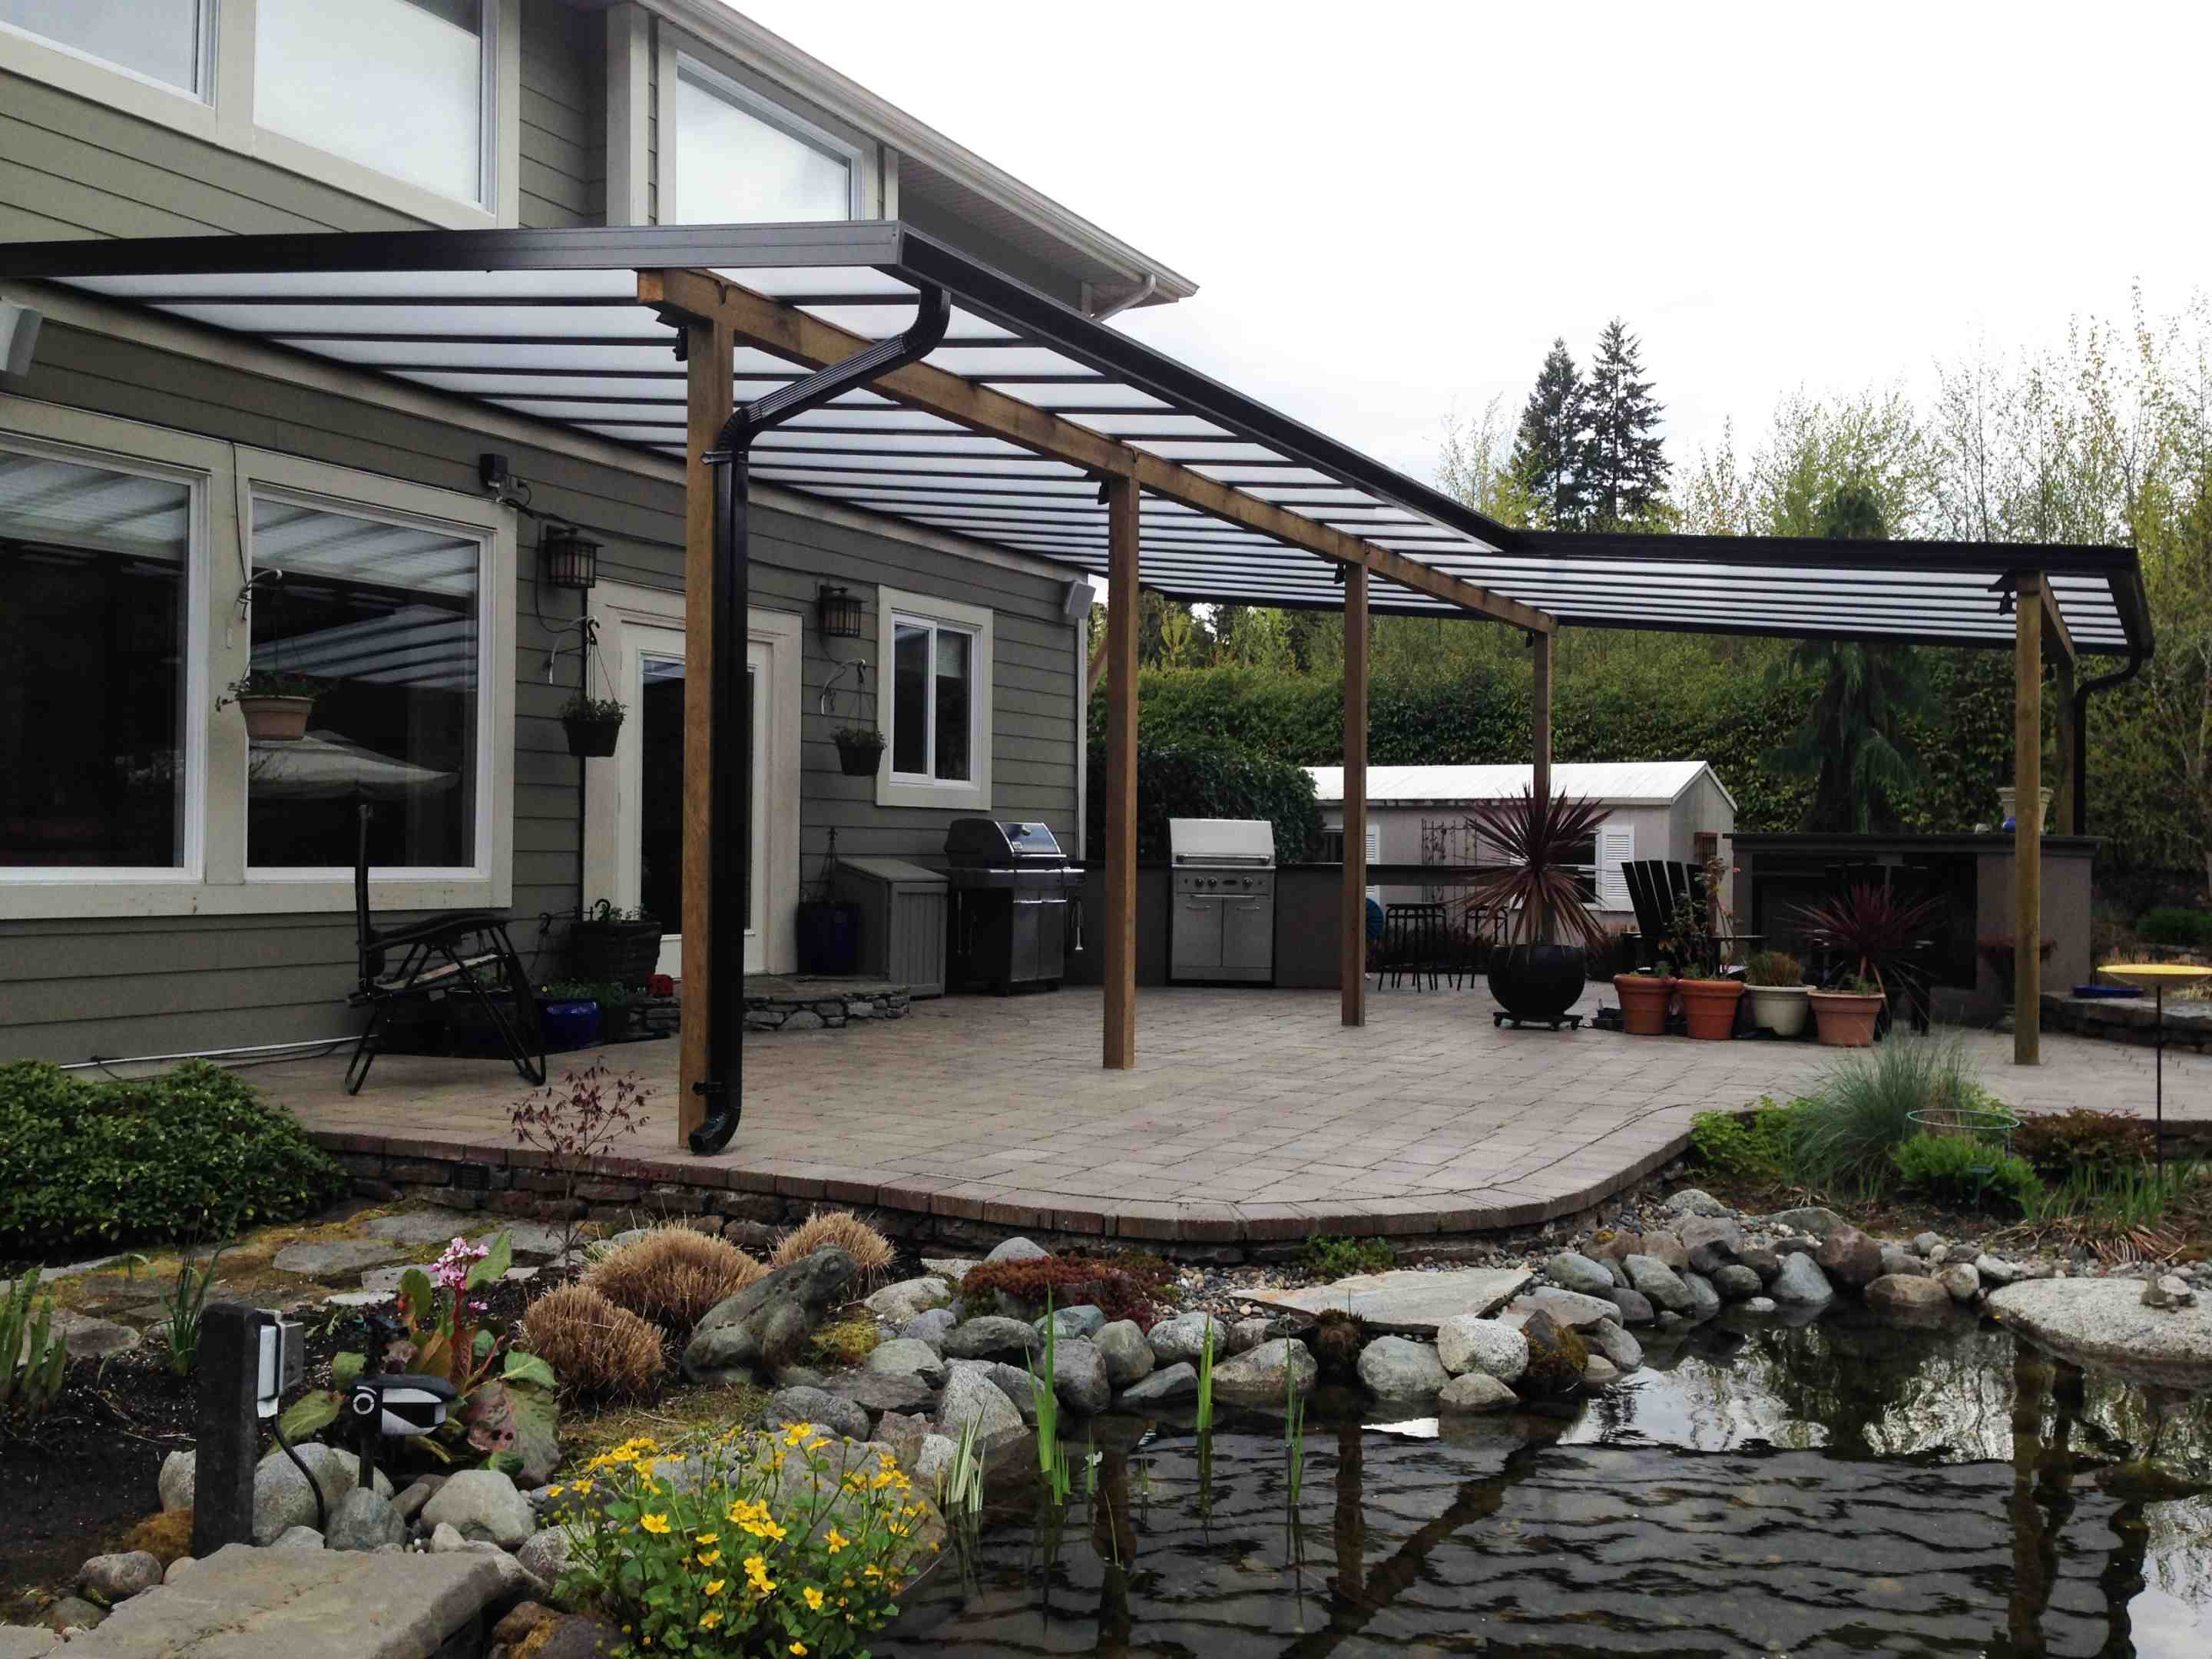 patio covers, deck covers, deck coverings, backyard covered patio, best patio covers, how to purchase patio cover, price of patio cover in toronto